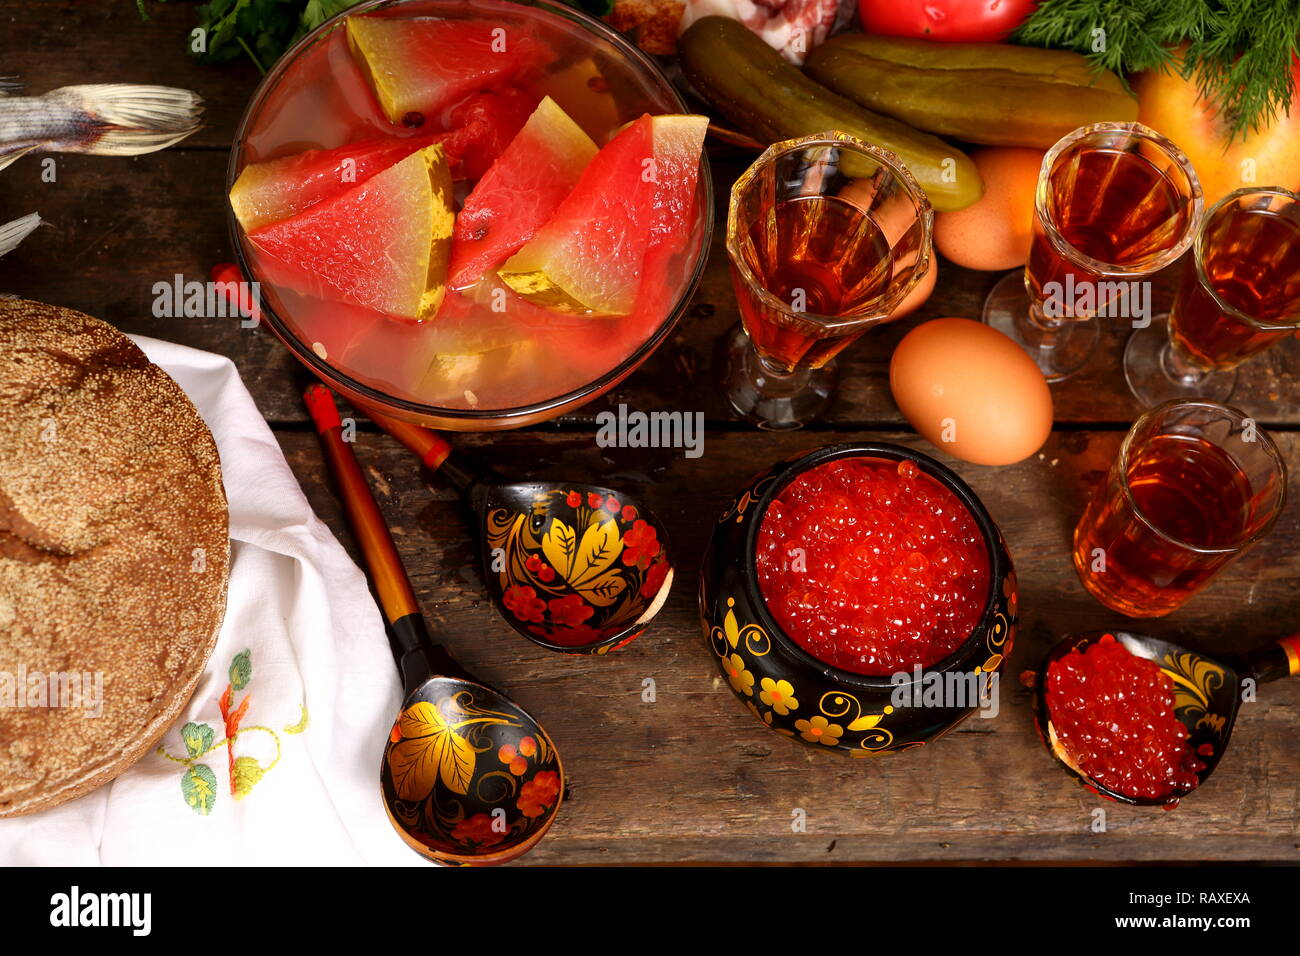 Still life with red caviar and vodka on a wooden table - Stock Image